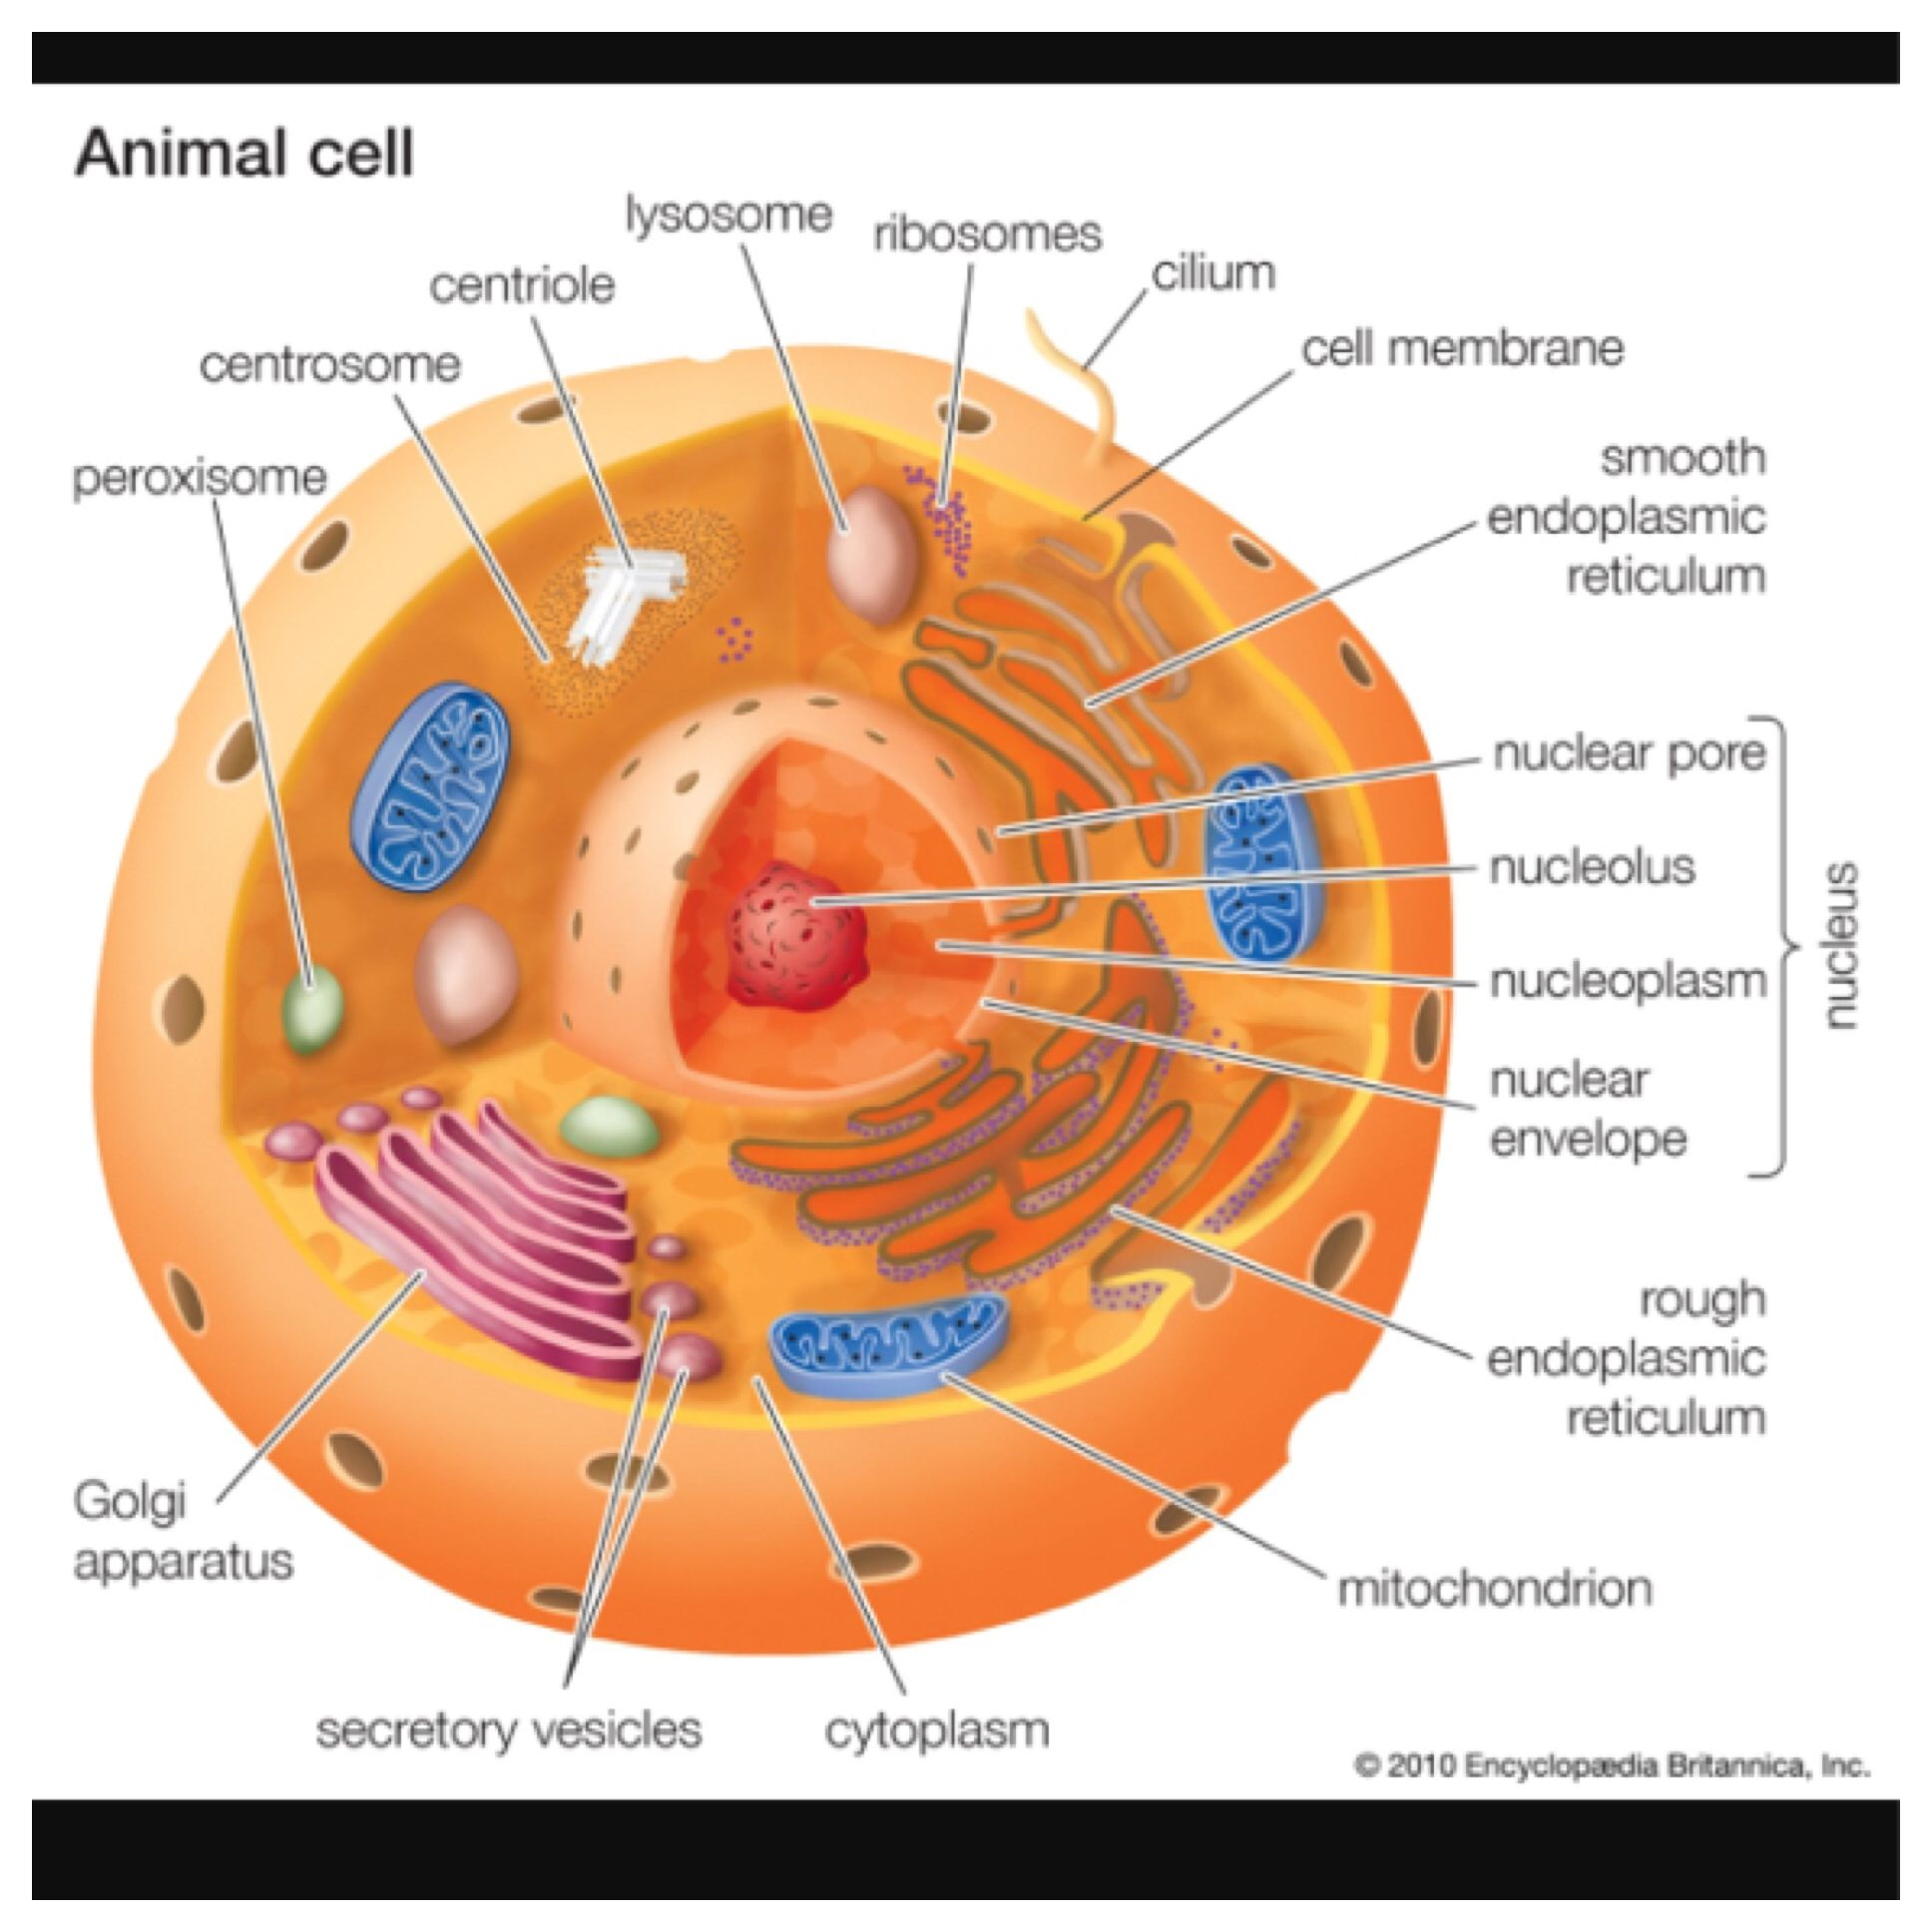 animal cell 3d animal cell model 3d animal cell project cell model project  [ 1936 x 1936 Pixel ]